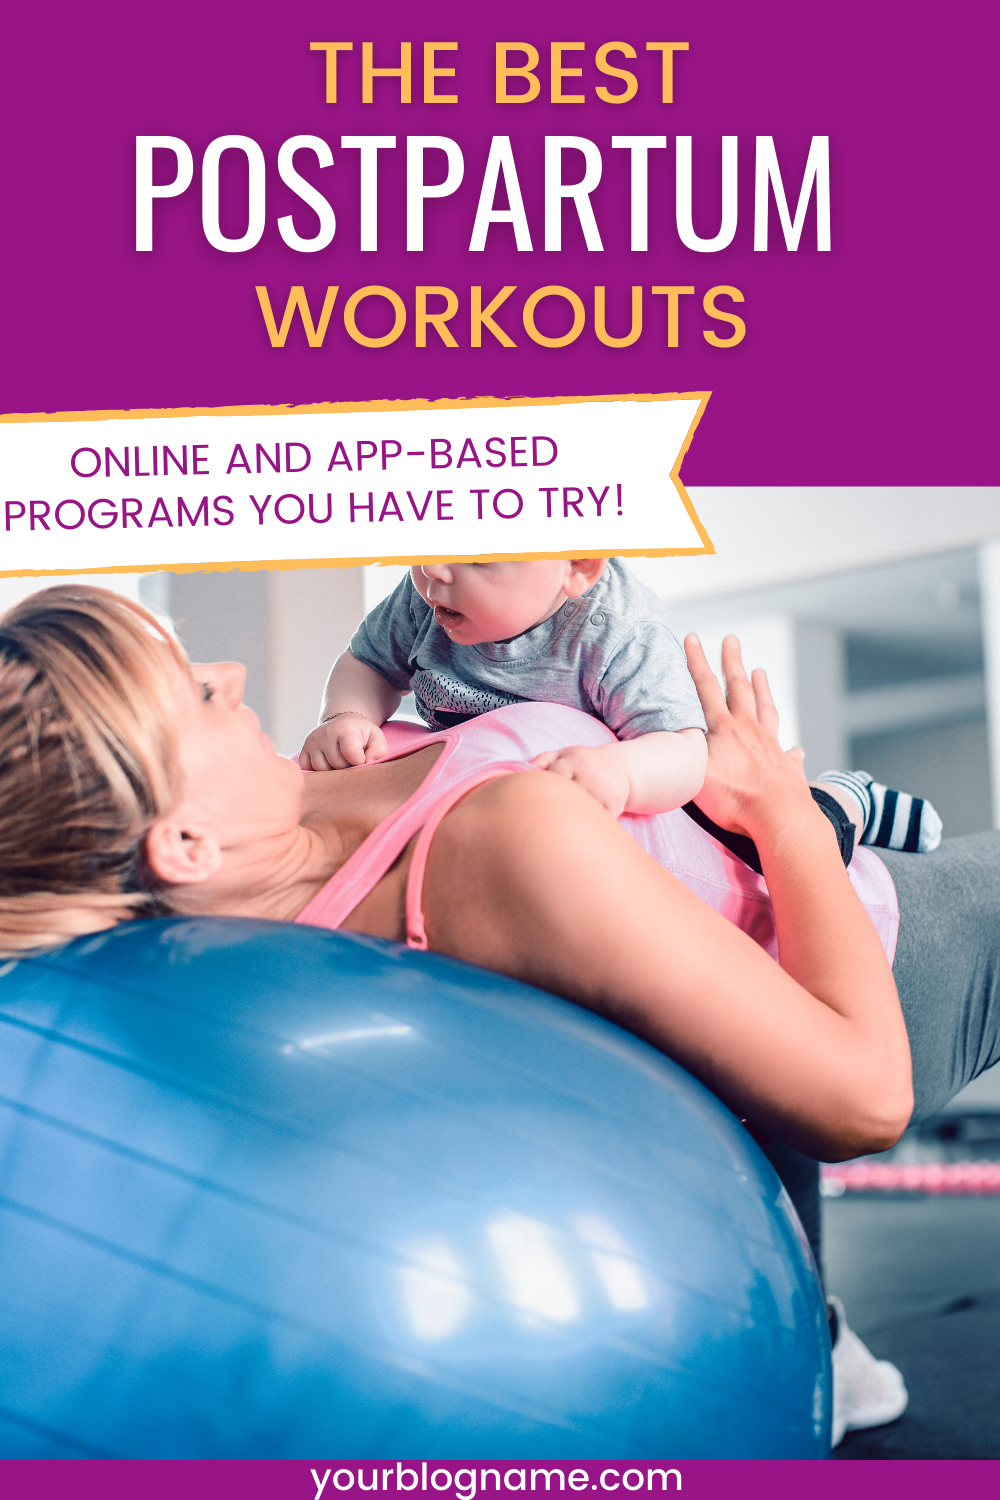 Looking for a little motivation for getting back into a fitness routine after pregnancy? Here is a list with the best online postpartum workouts available for new moms!